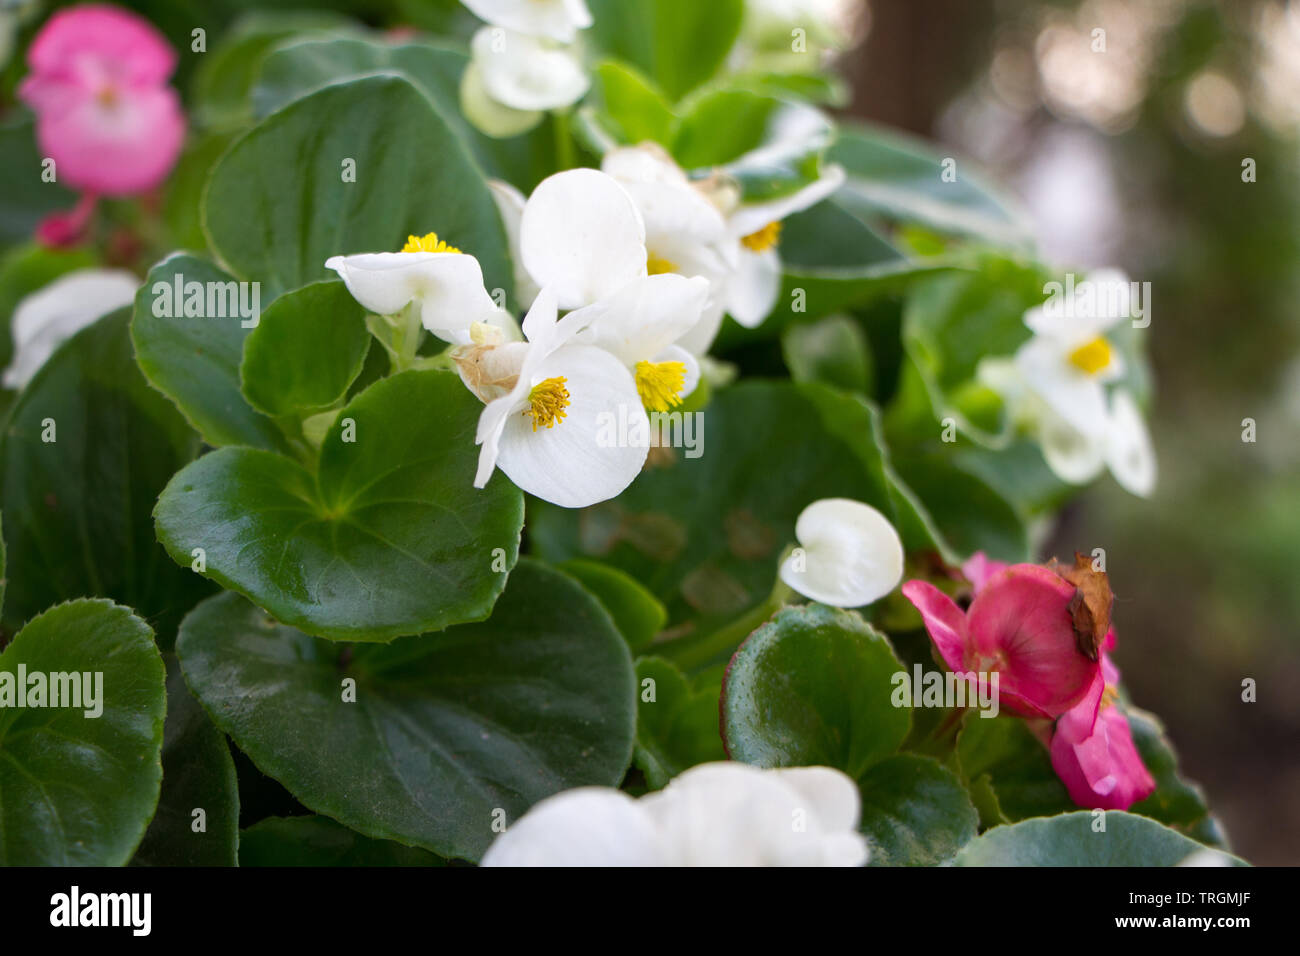 Extremely close-up white and pink Kalanchoe blossoms, spring summer concept, selective focus, copy space. - Stock Image